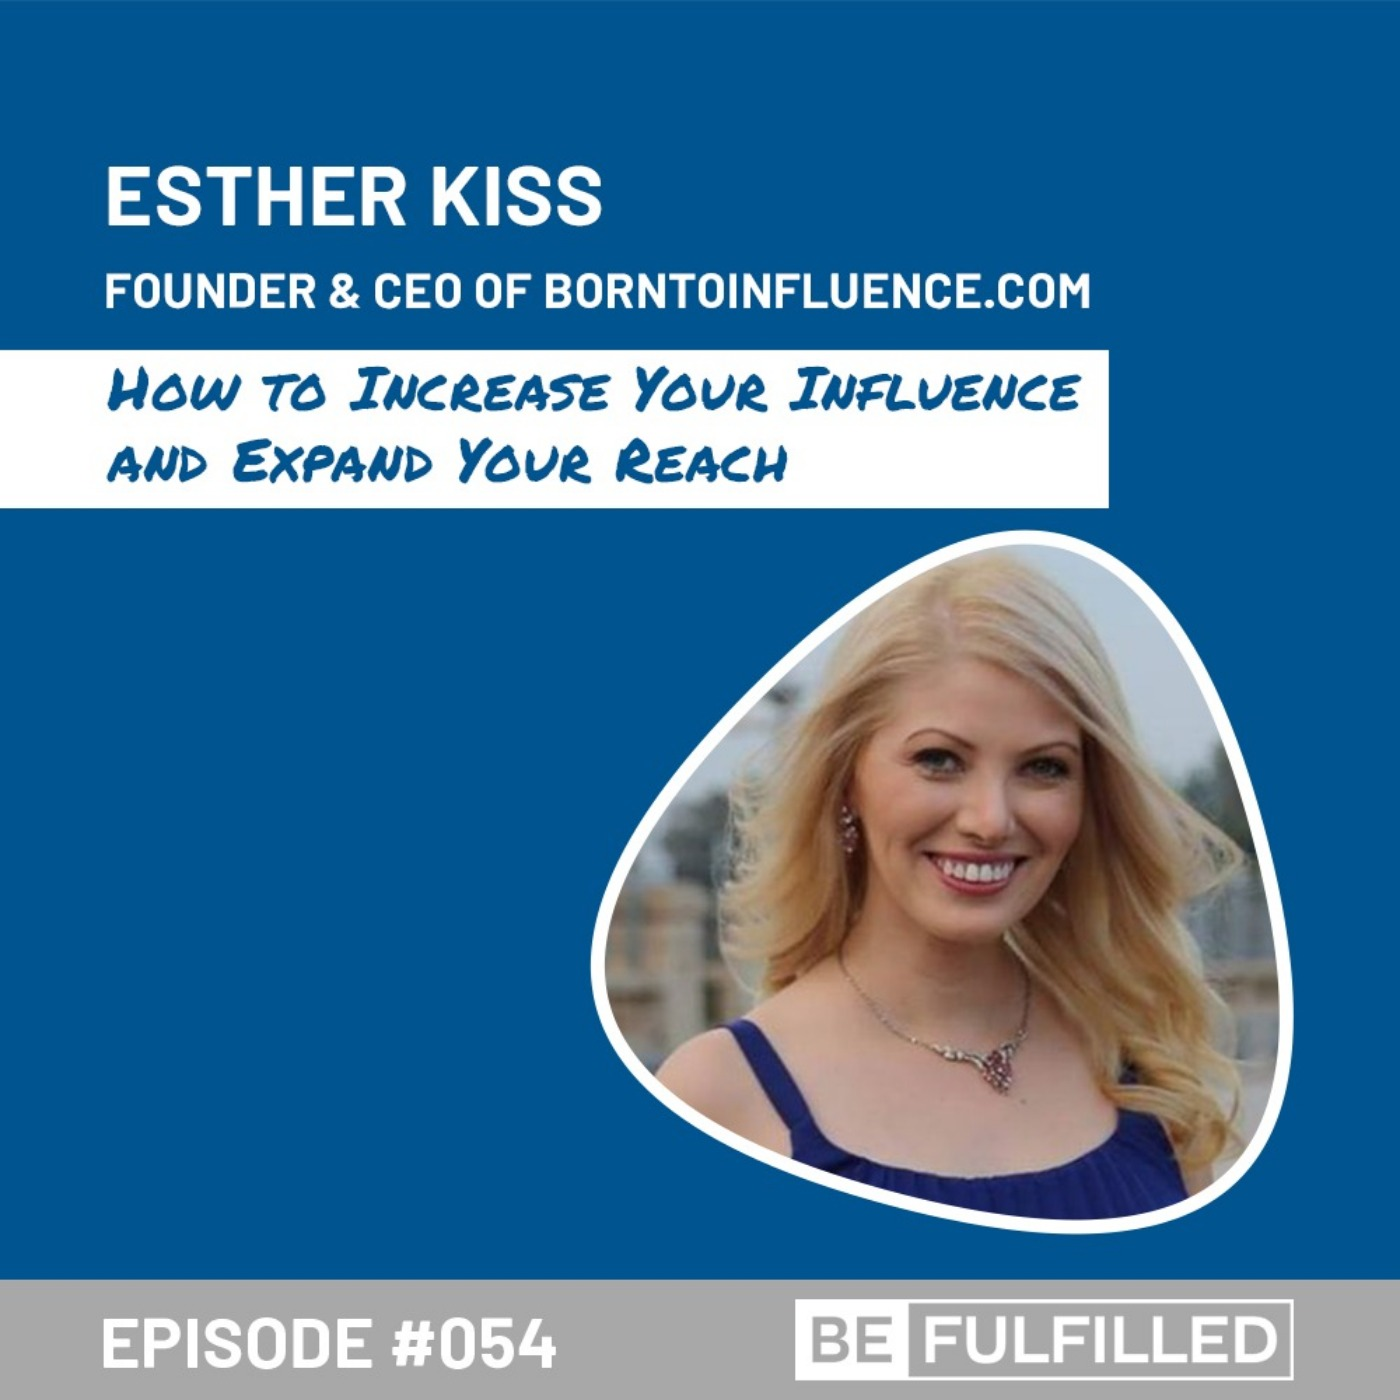 How to Increase Your Influence and Expand Your Reach - Esther Kiss